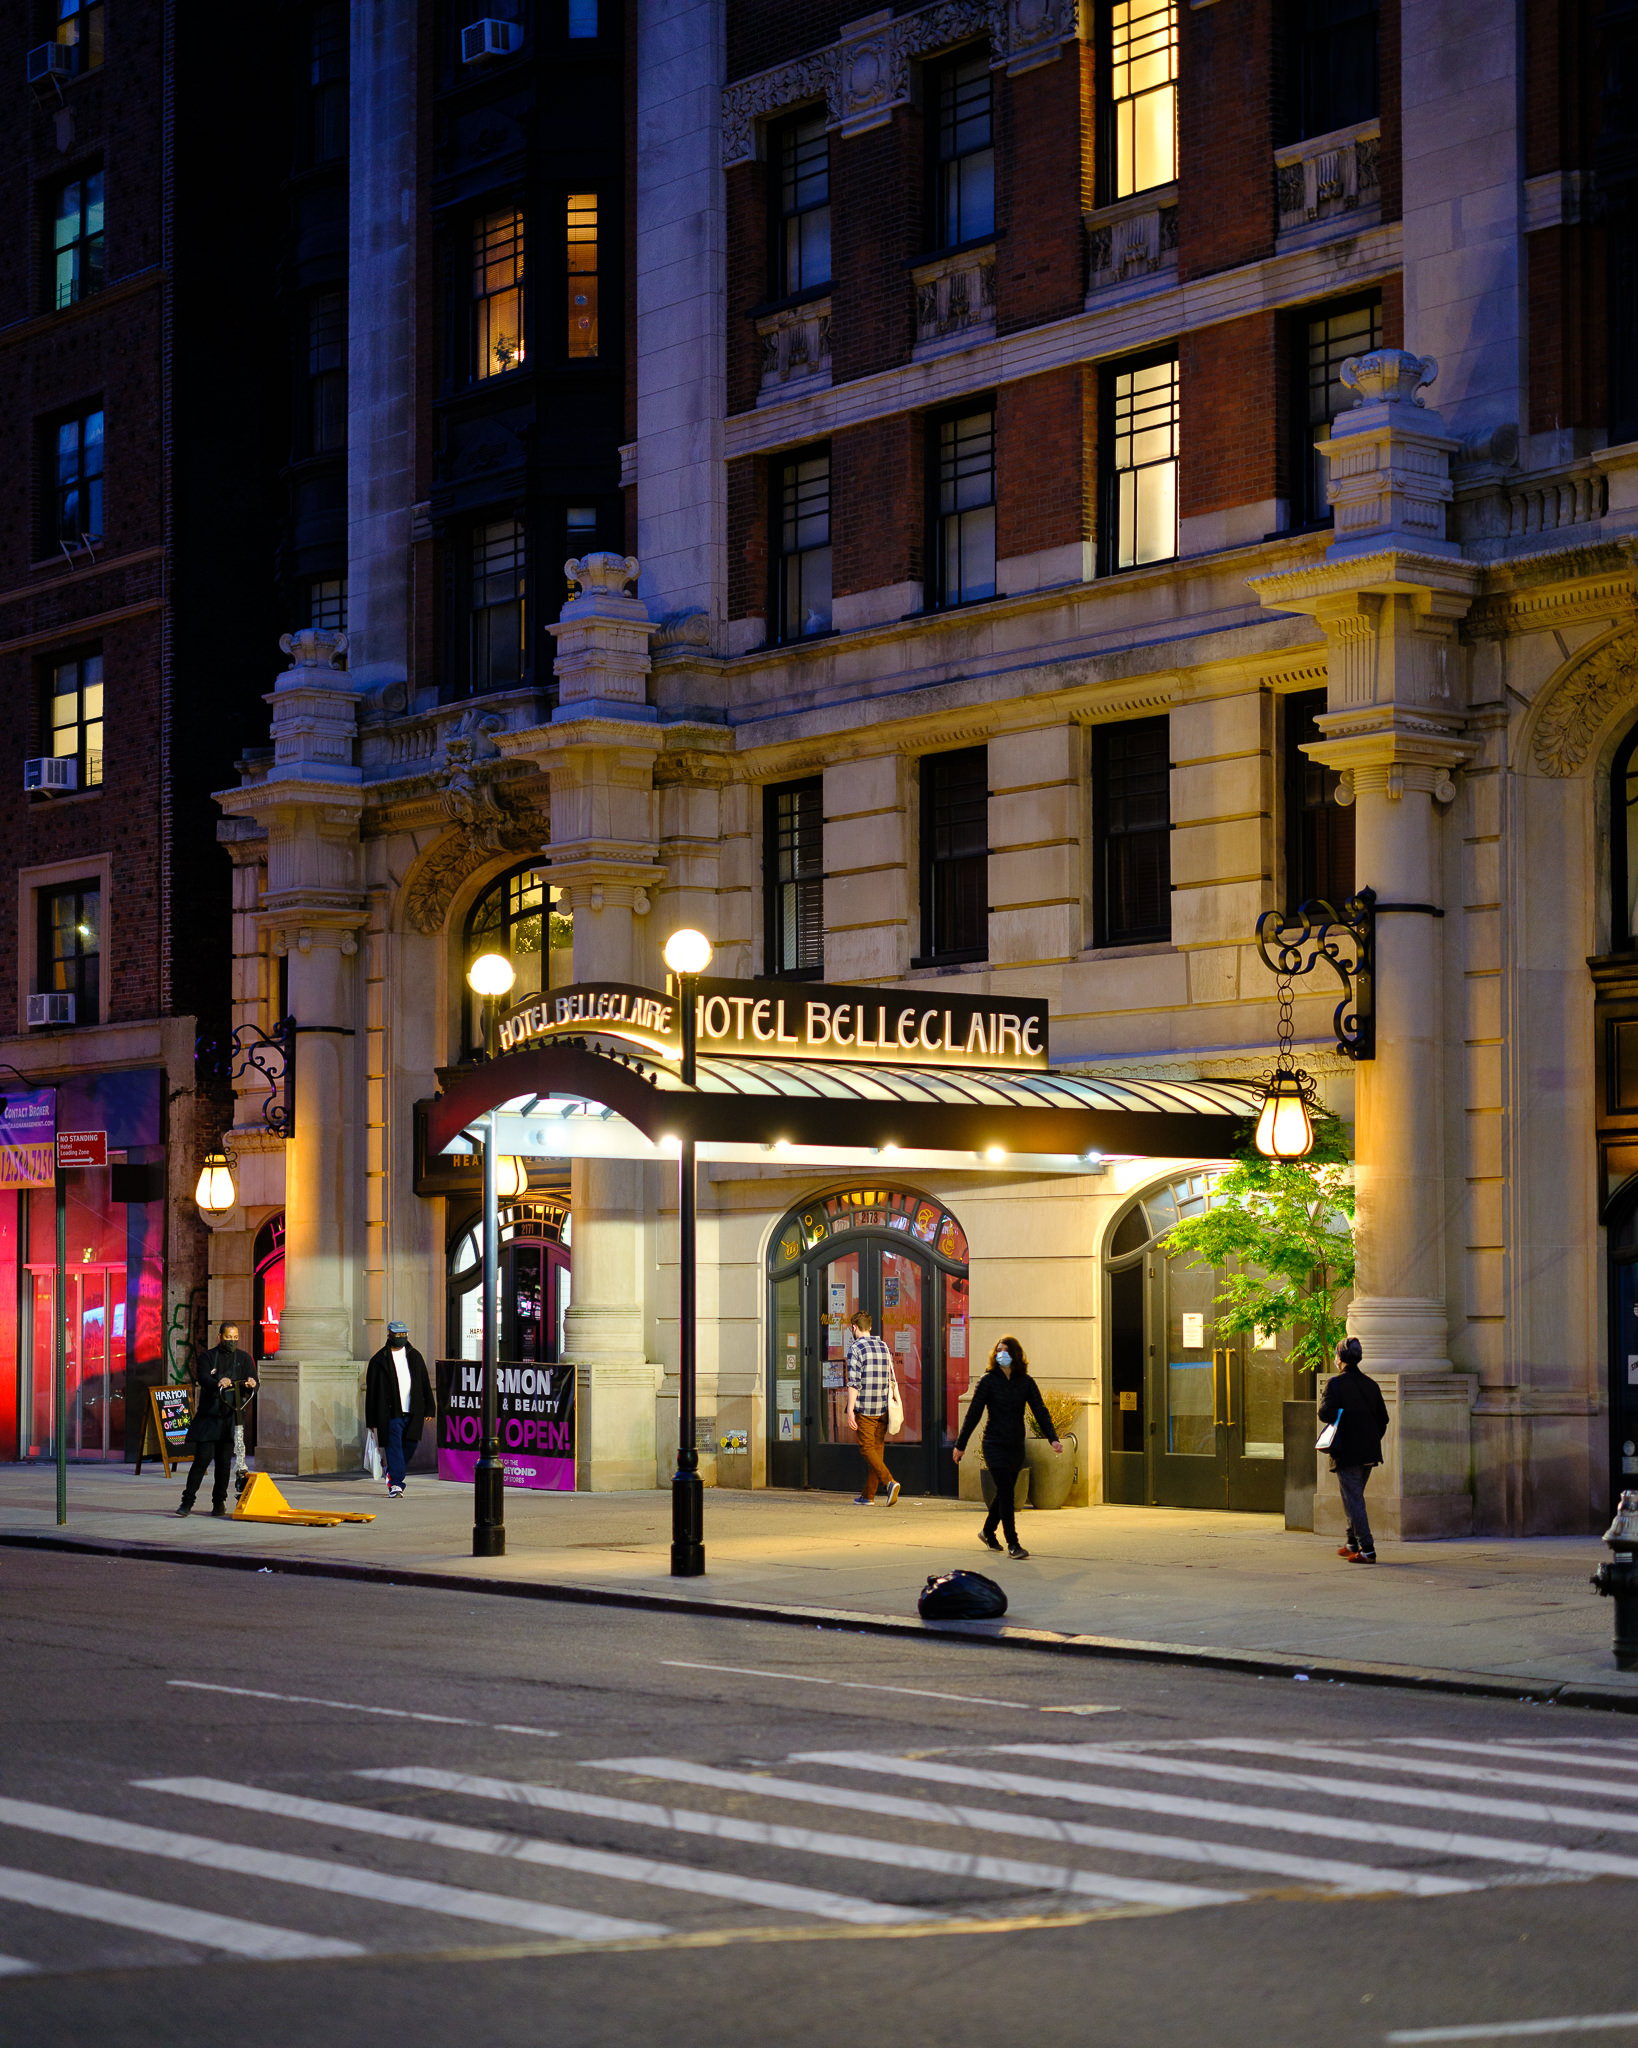 a photo of the hotel belleclaire at night new york